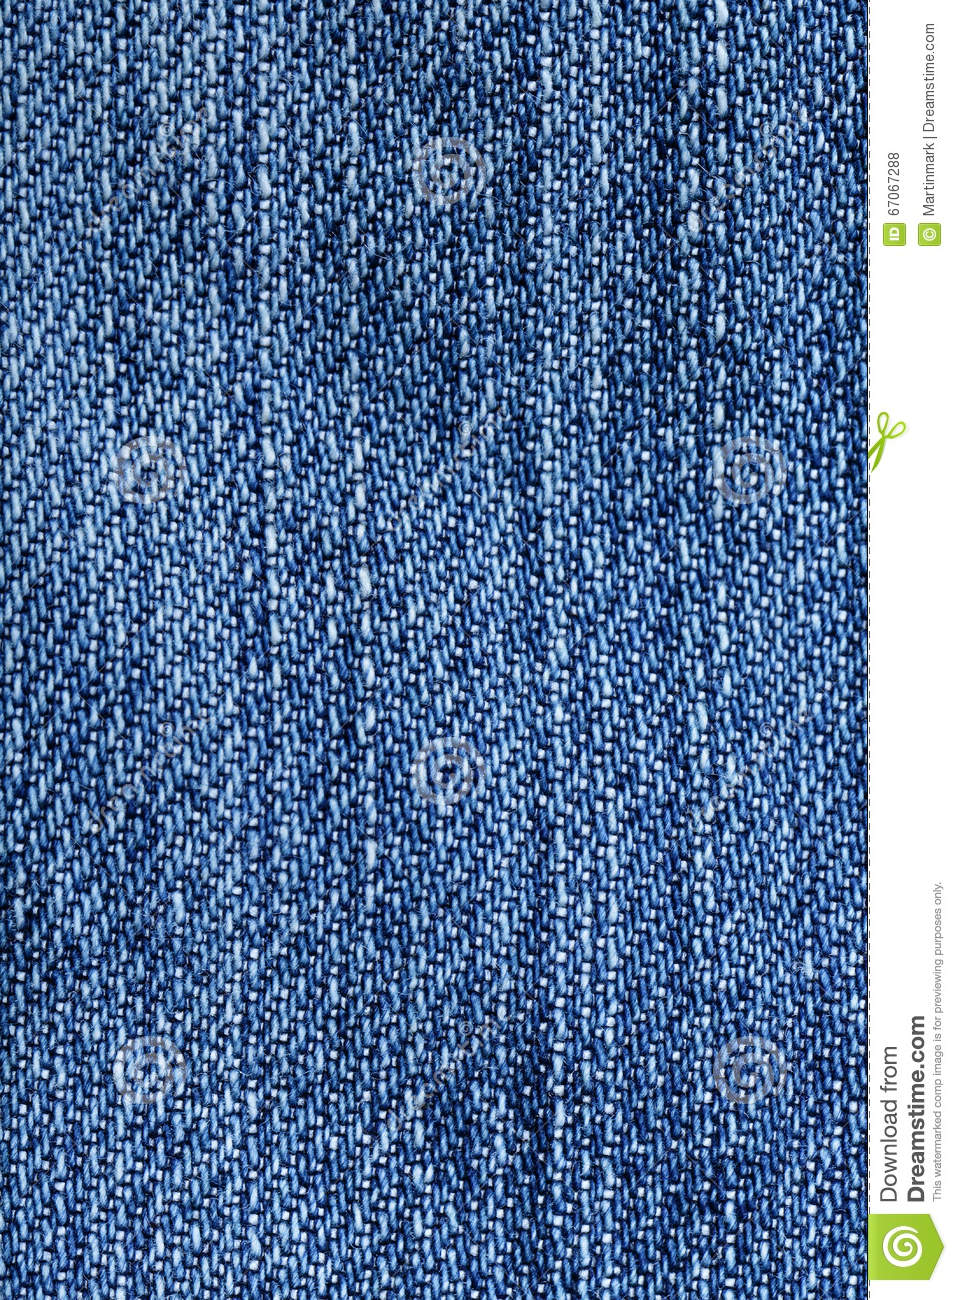 3adf6afbdc0a Jeans fabric background. Worn jean pants closeup of faded blue denim weave  texture with vertical weave lines useful for elements of illustration